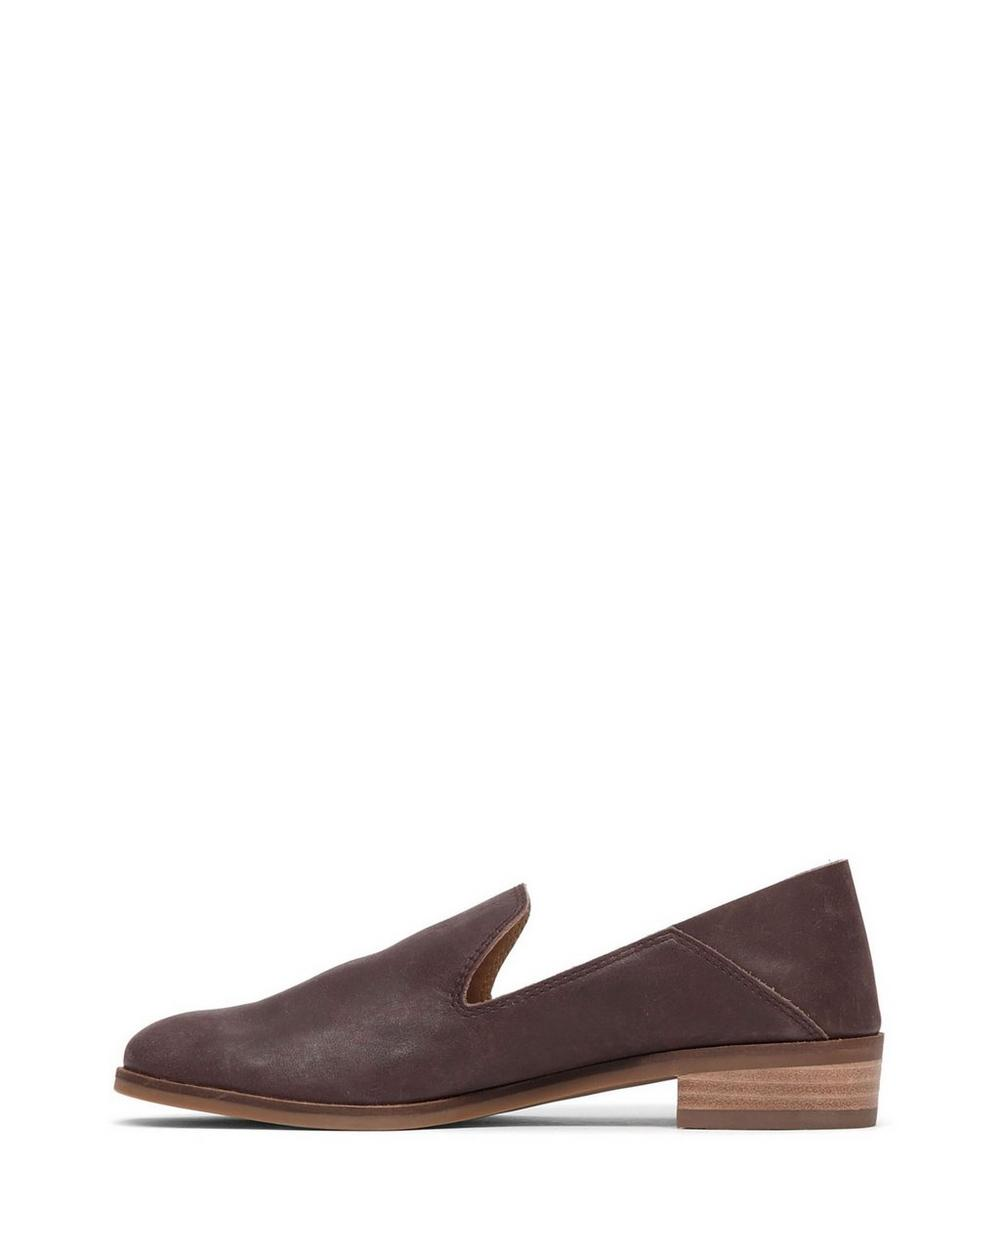 CAHILL LEATHER FLAT, image 7